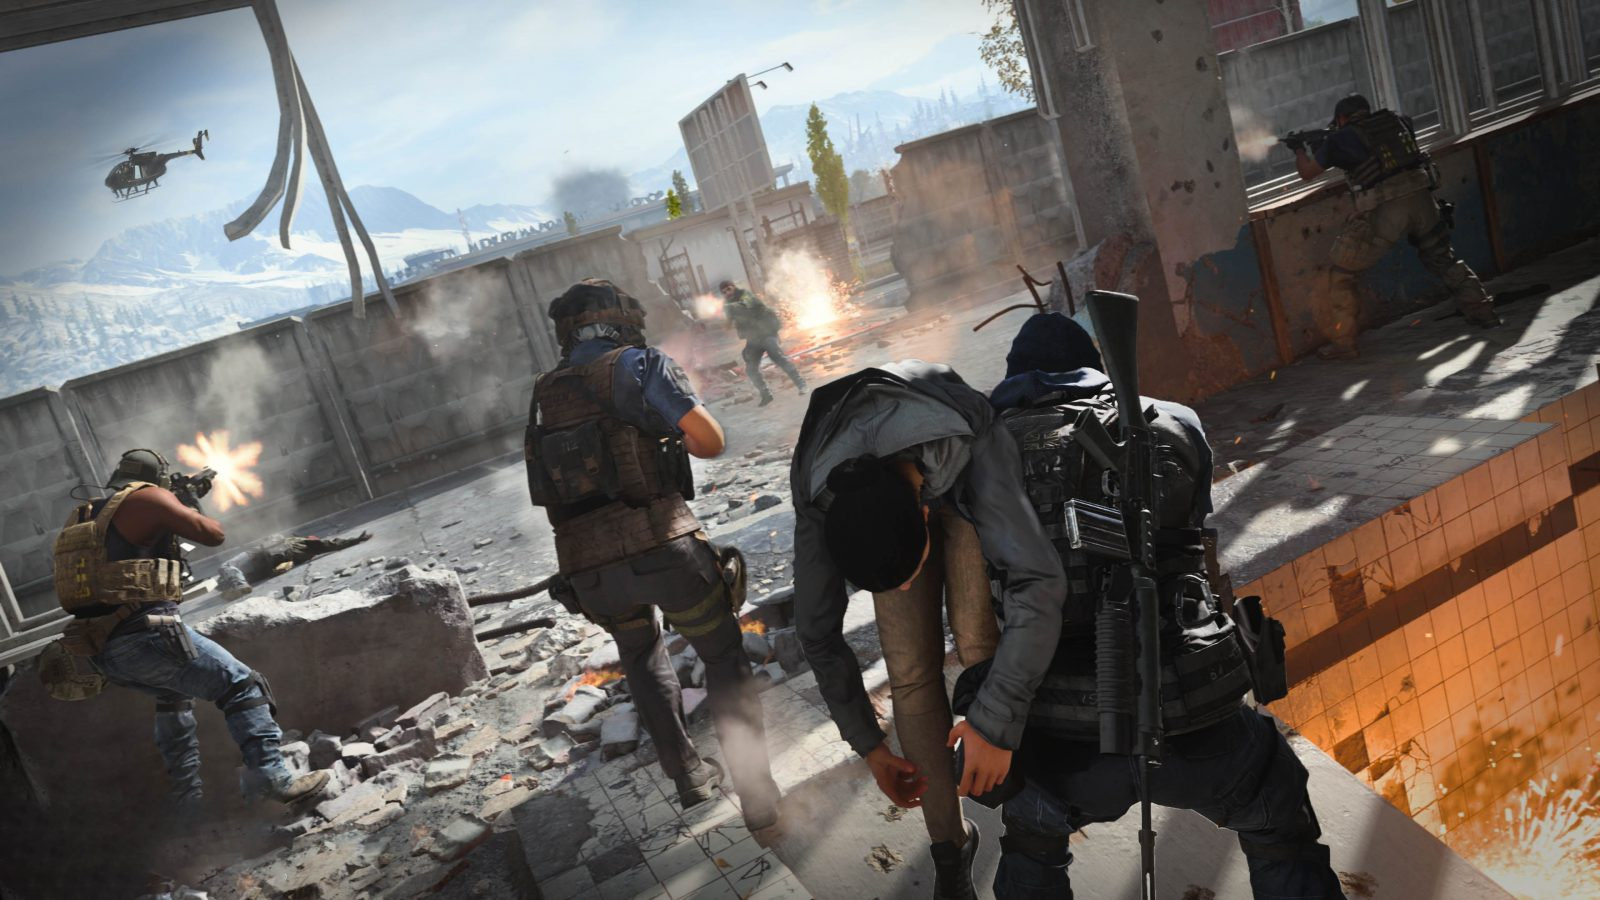 Call of Duty: Modern Warfare's Gunfight is getting 1v1 and 3v3 modes